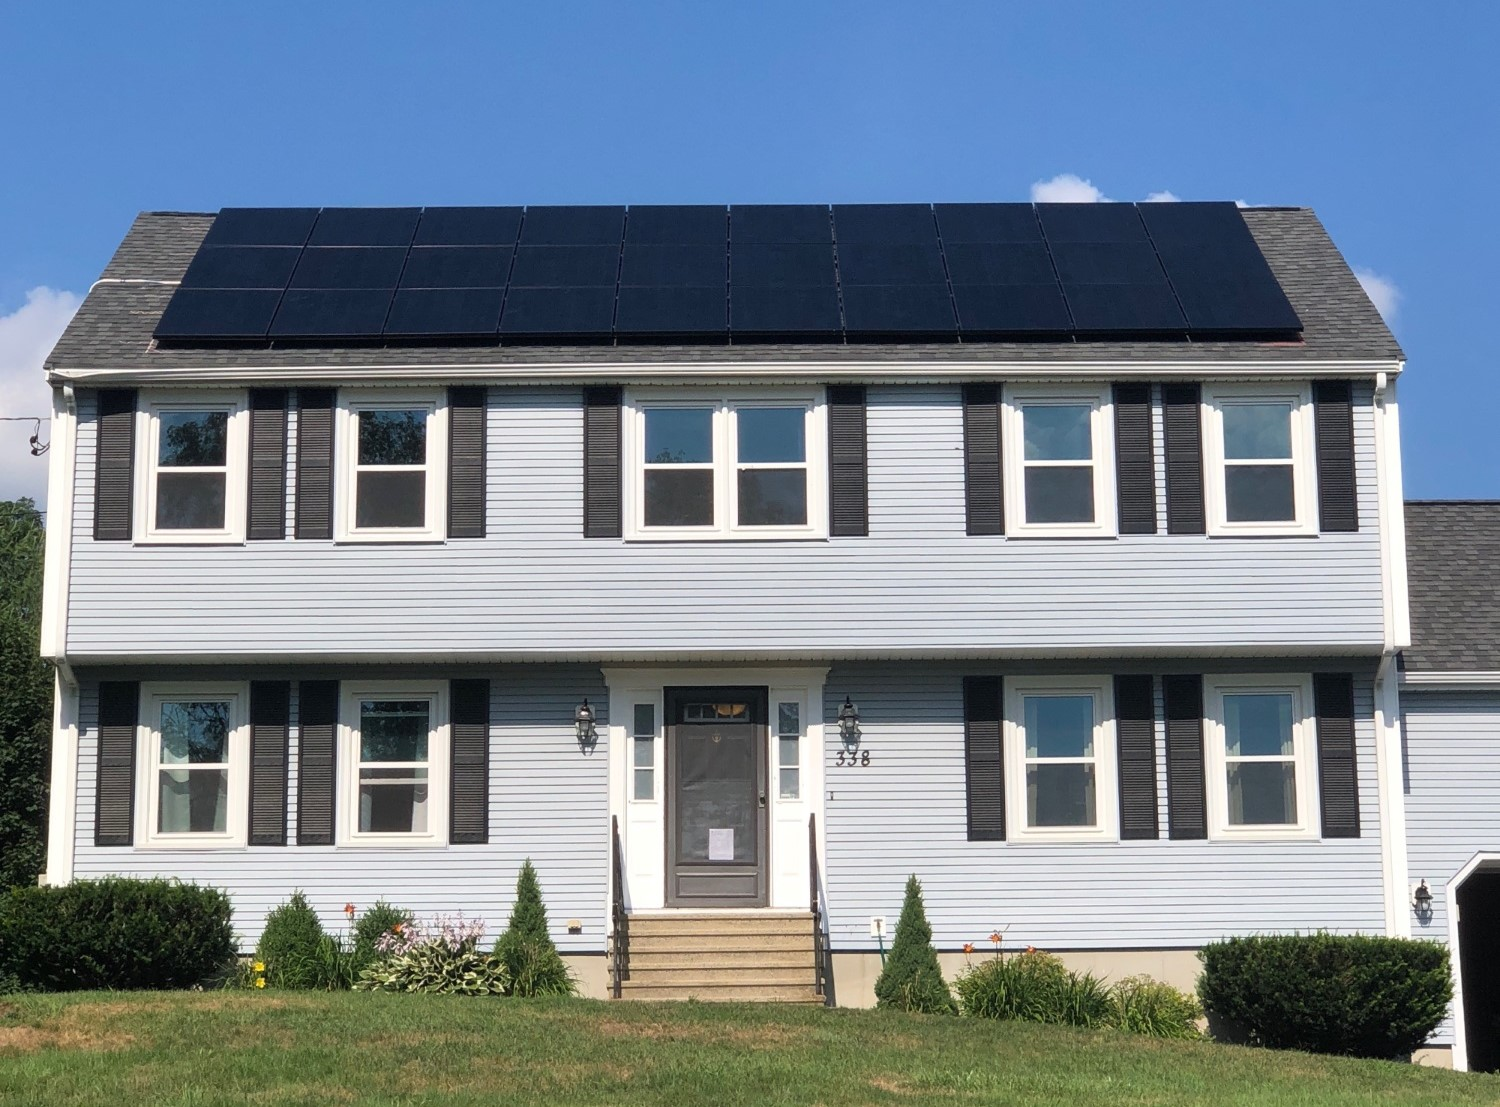 How Solar Panels Work Why Use Sunpower By Bluesel Home Does Power In A Residential Low Maintenance Have No Moving Parts Which Means That They Require Annual Energy Systems Last For Decades